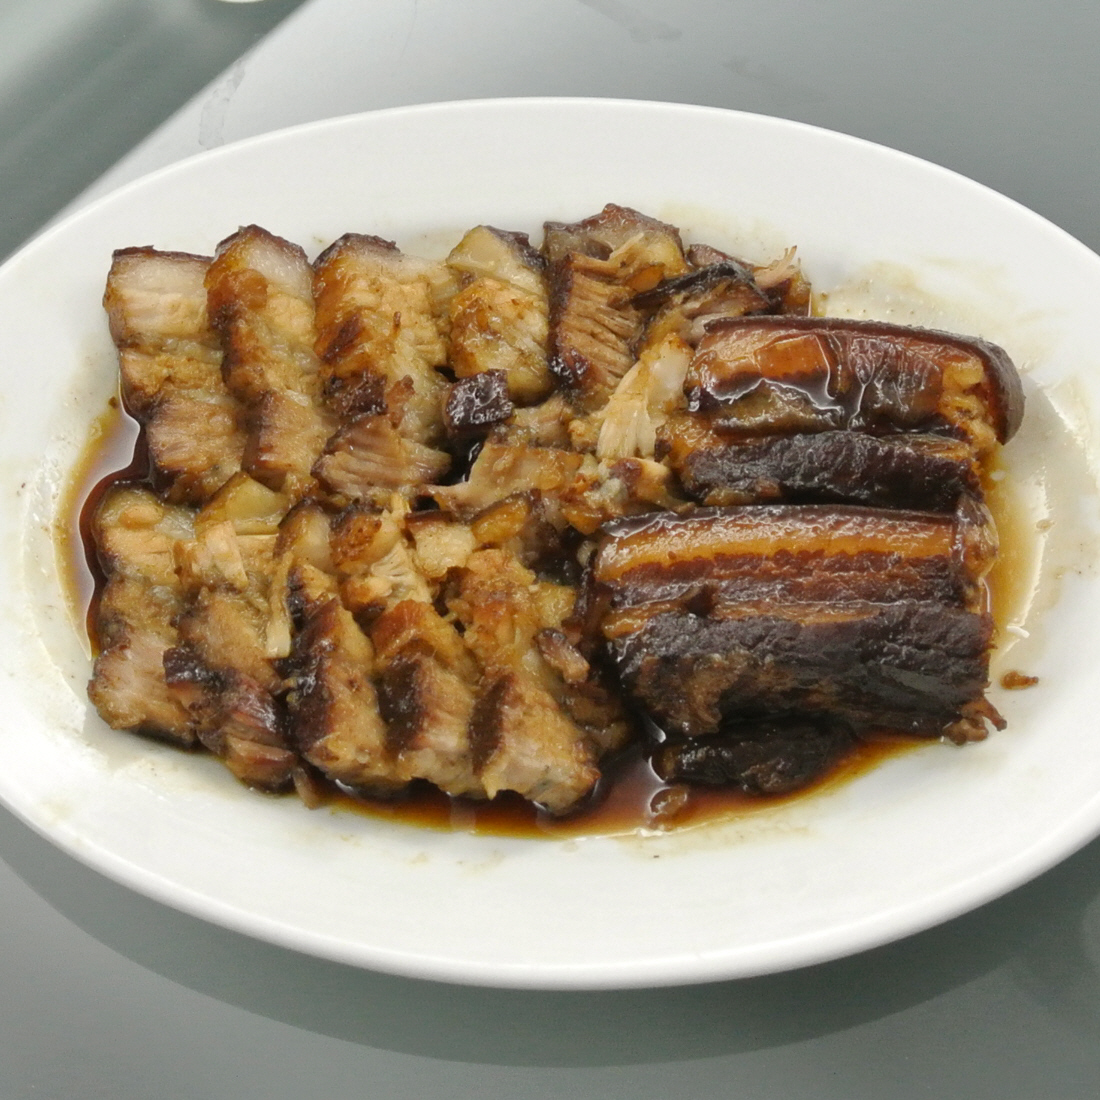 Chashu pork recipe